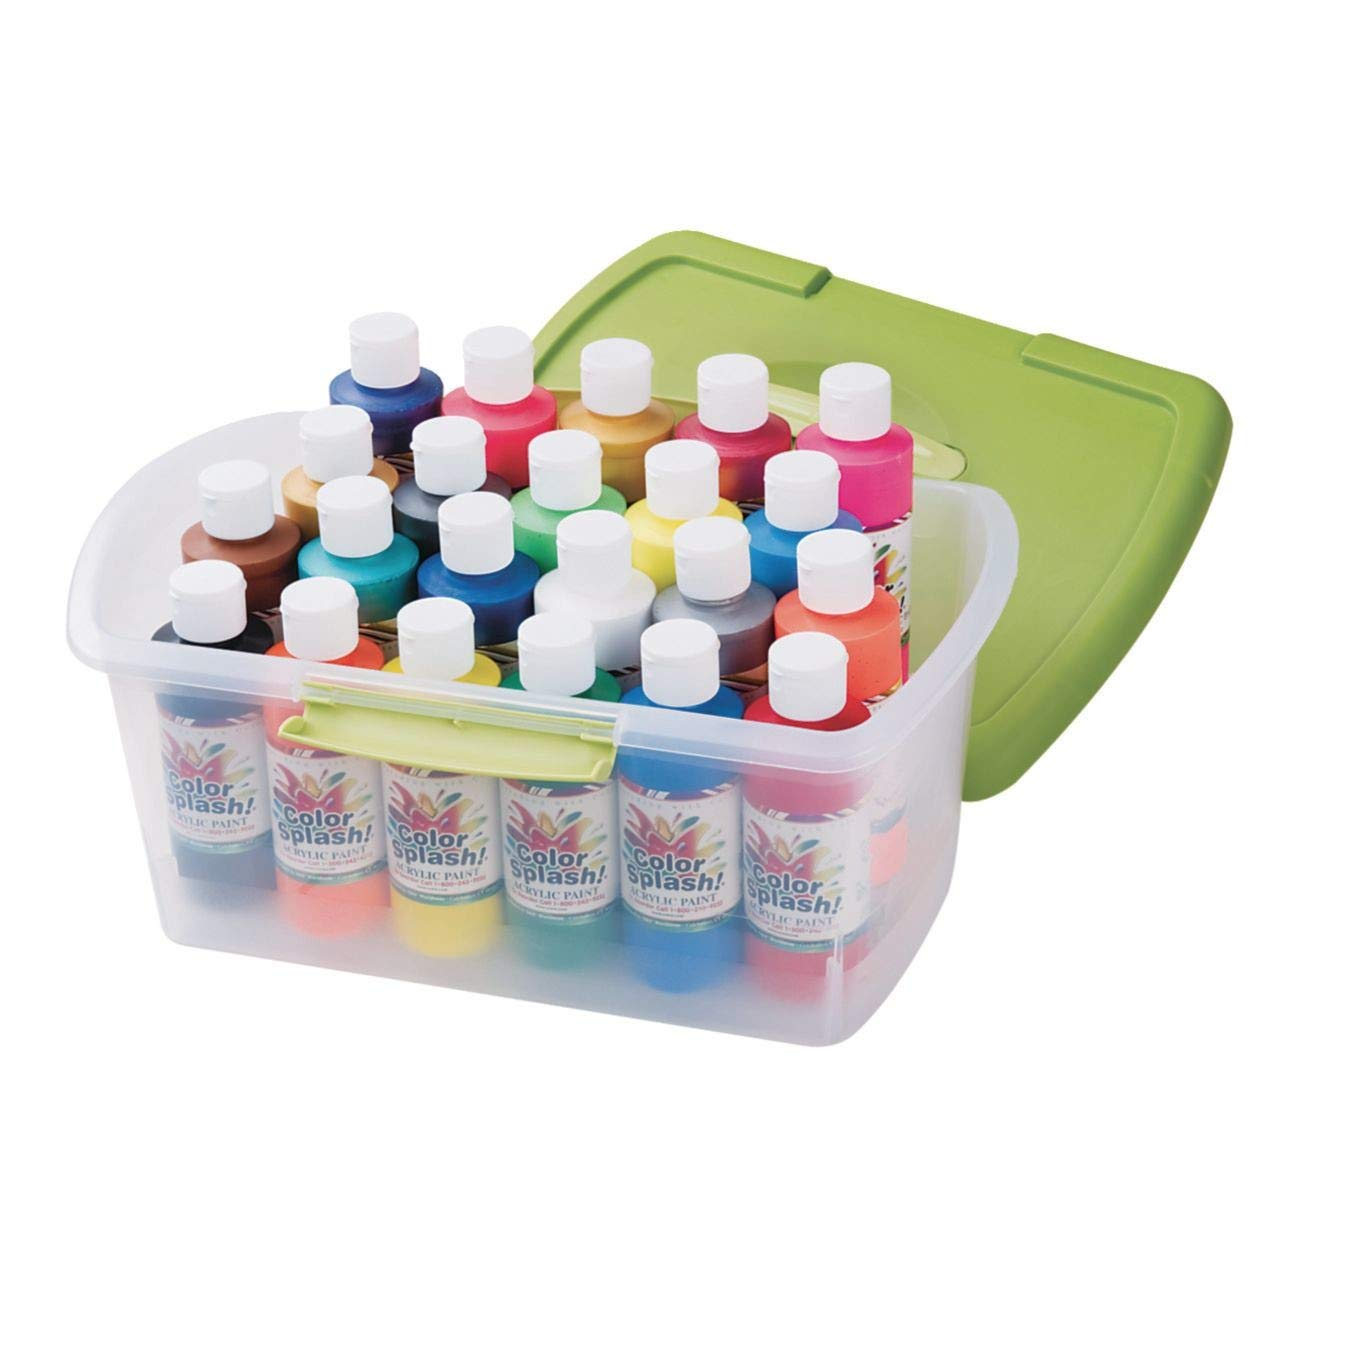 Color Splash! Acrylic Paint in a Tub by S&S Worldwide